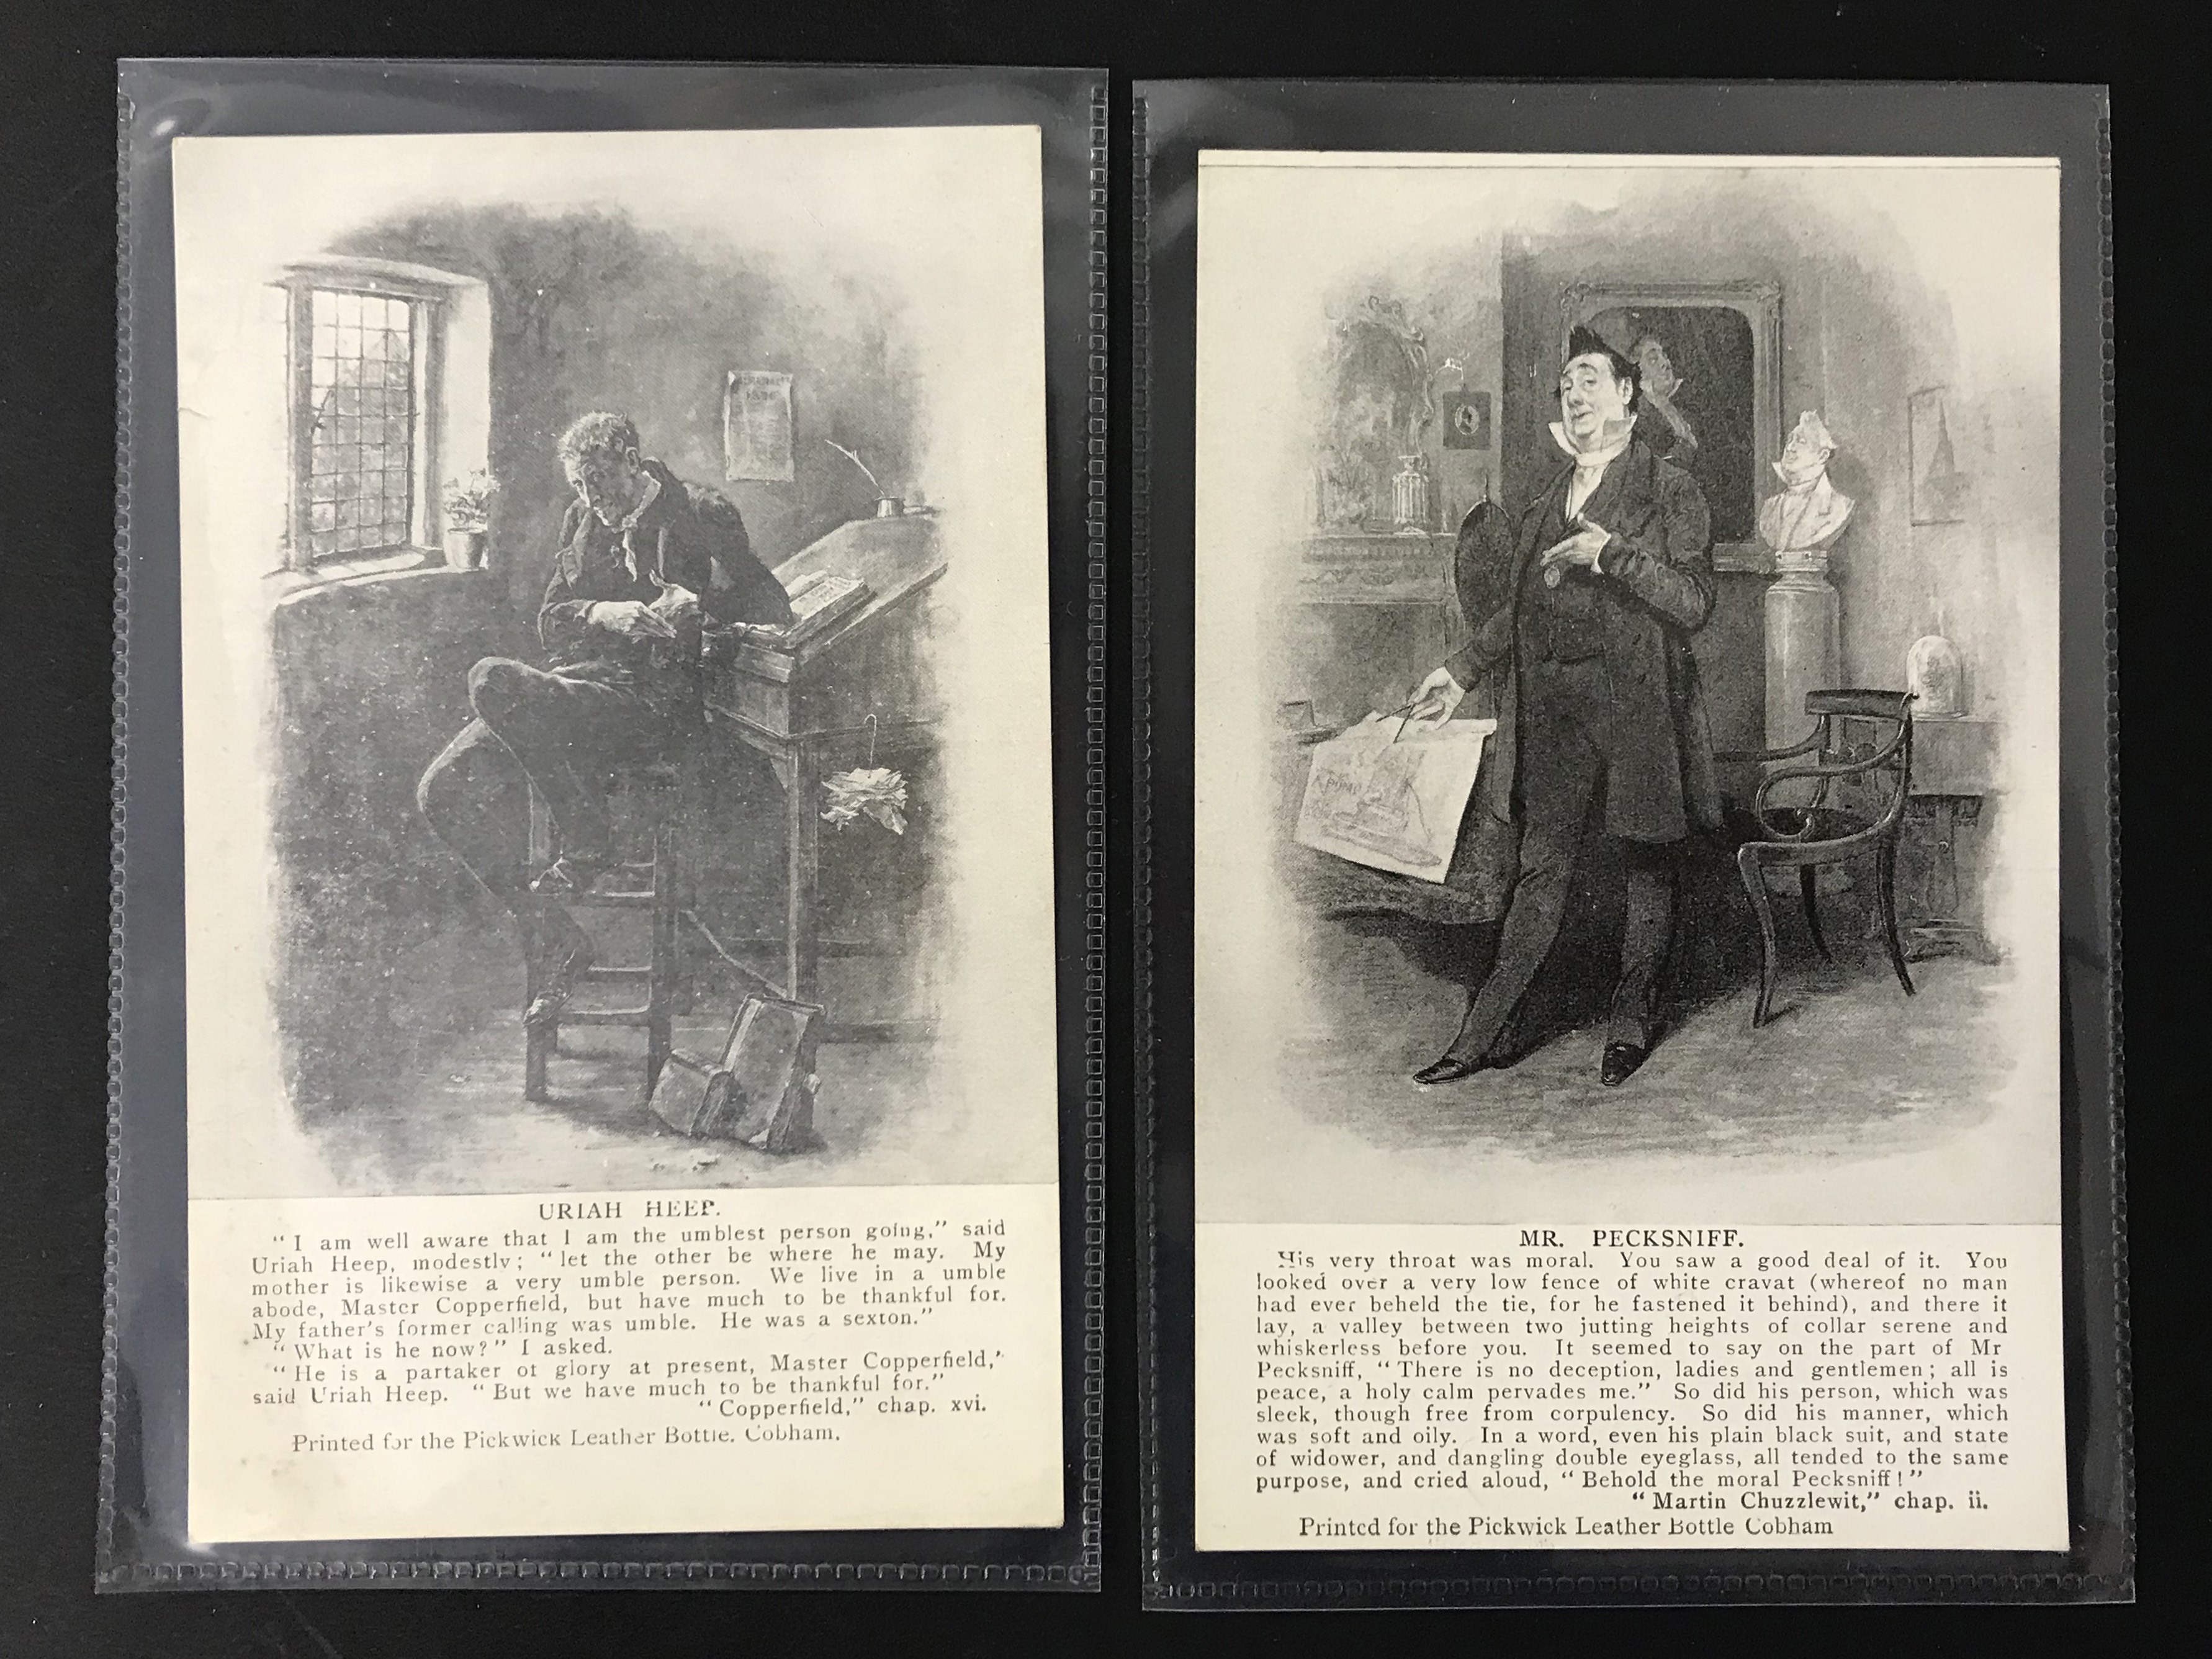 GROUP OF SEVEN DICKENS RELATED POSTCARDSPRINTED FOR THE PICKWICK LEATHER BOTTLE COMPANY - Image 4 of 6